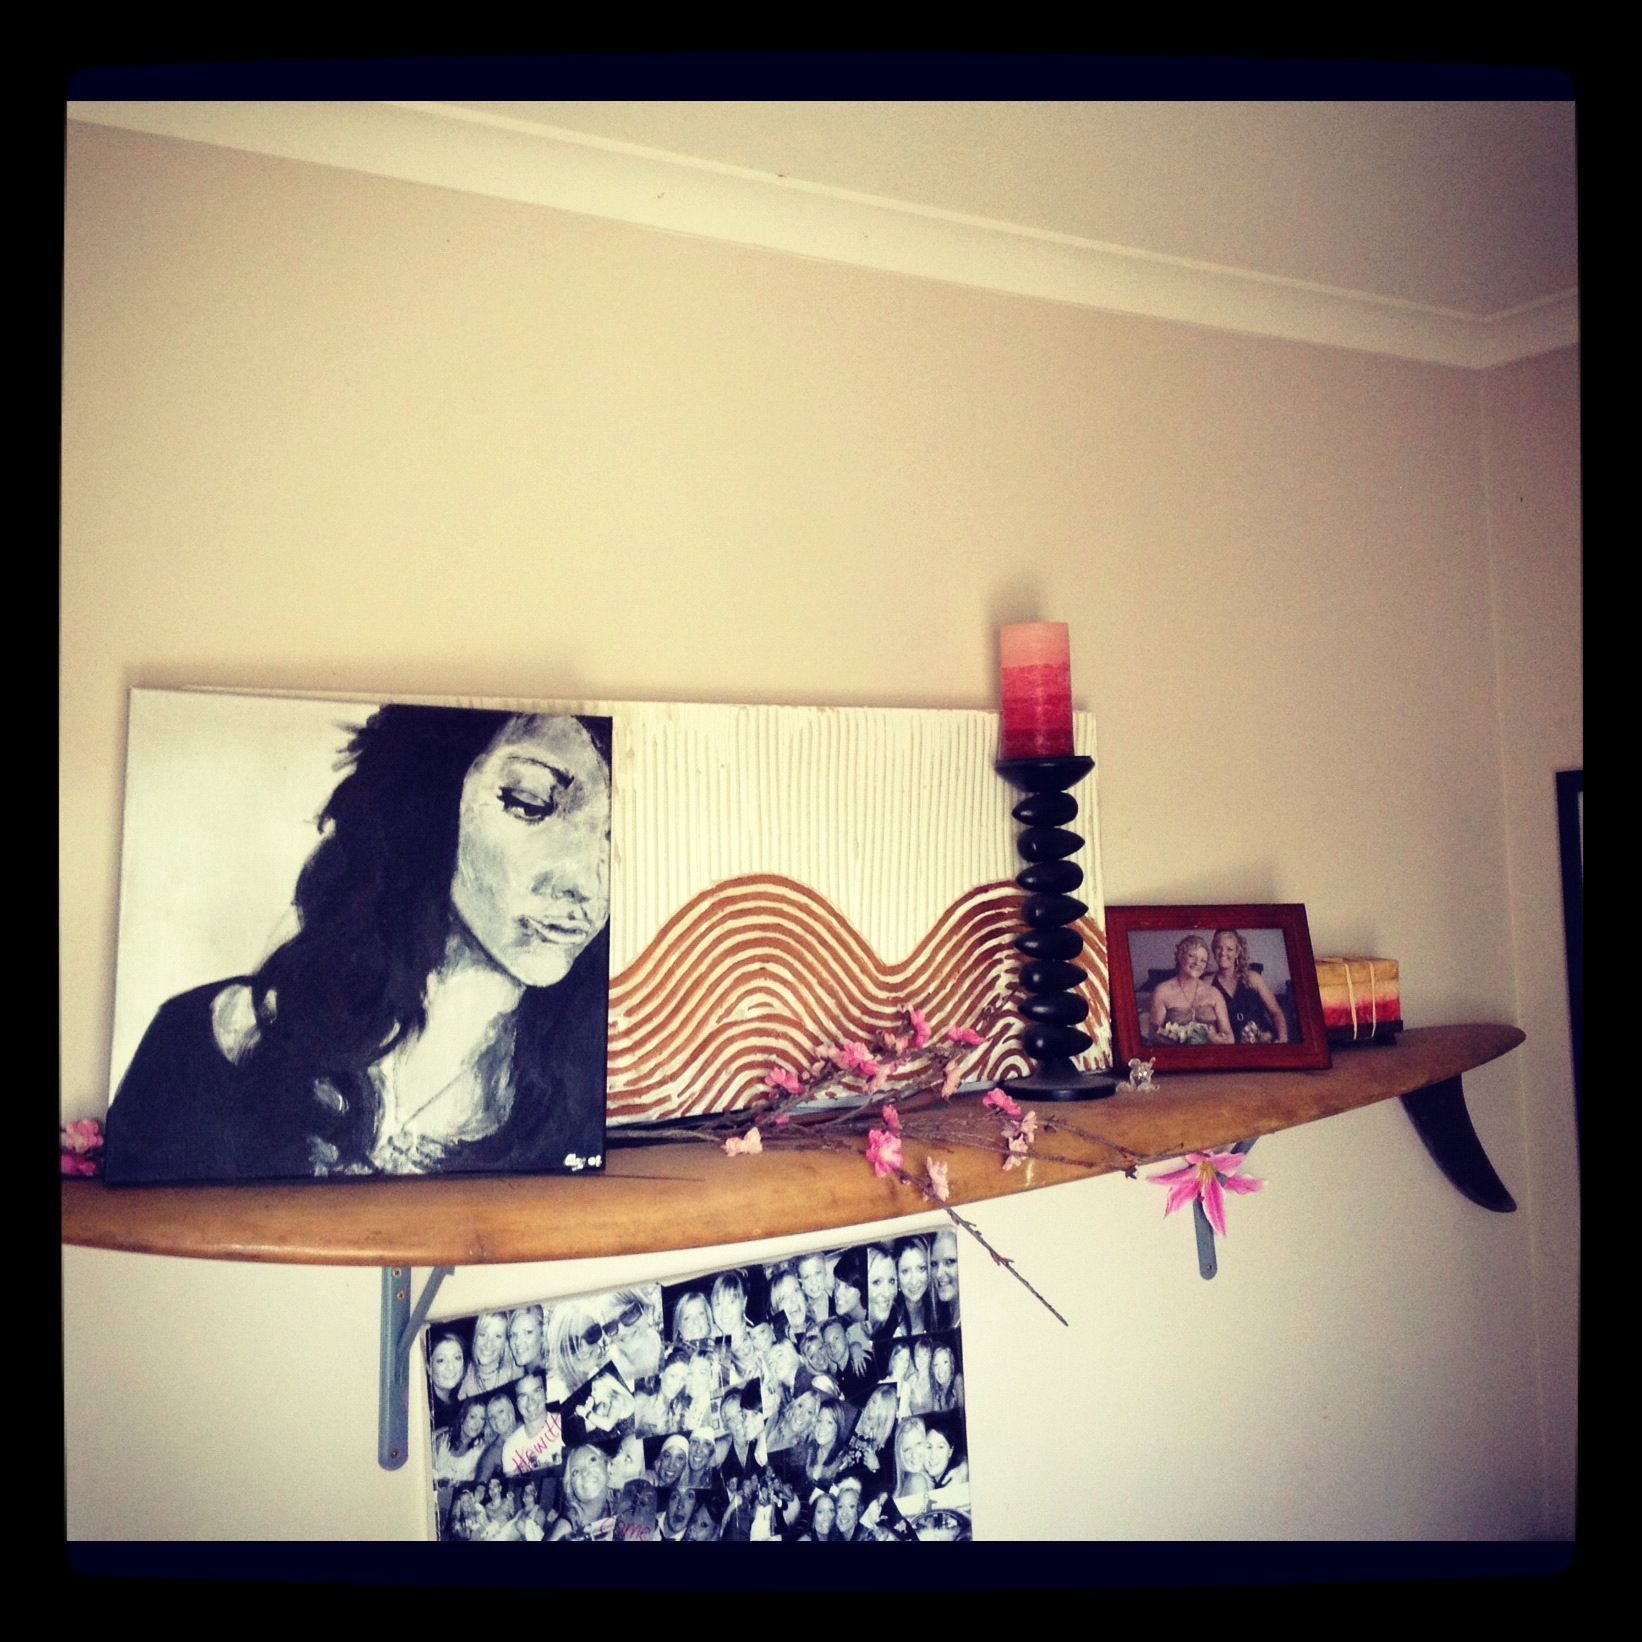 My DIY surfboard shelf. Need to use hidden brackets though ...